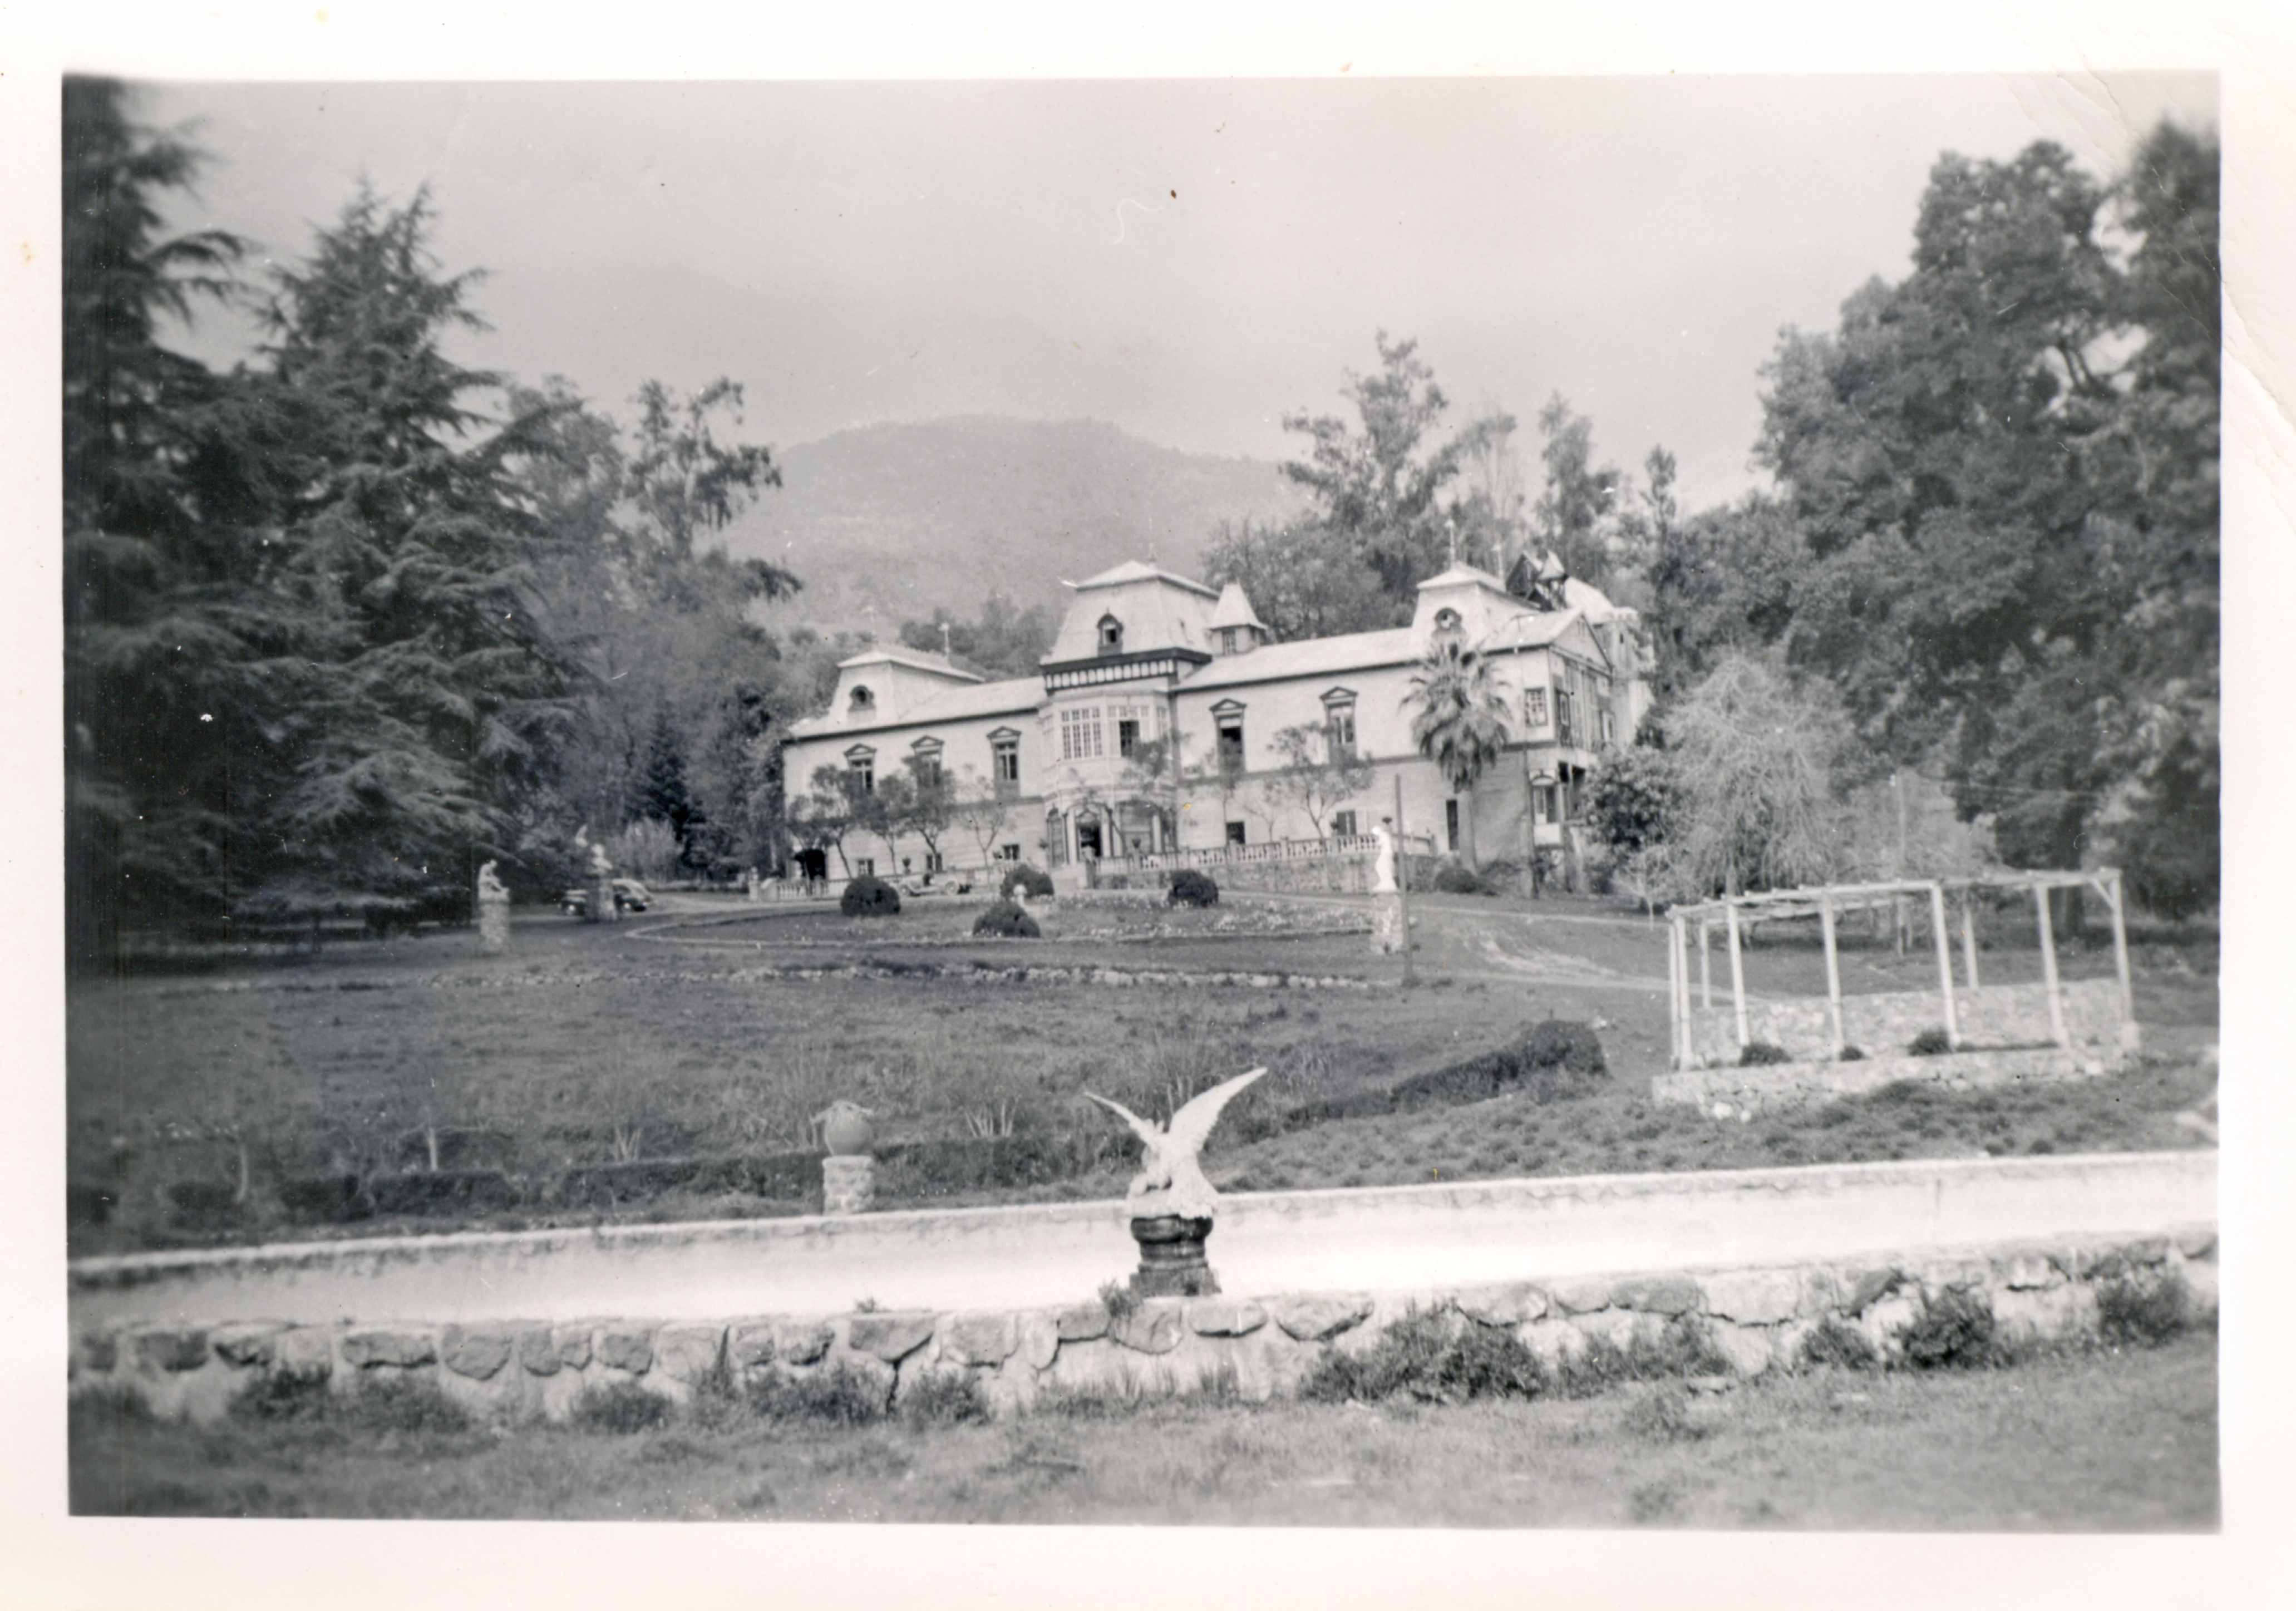 Enterreno - Fotos históricas de chile - fotos antiguas de Chile - Parque y Casona Arrieta en 1955